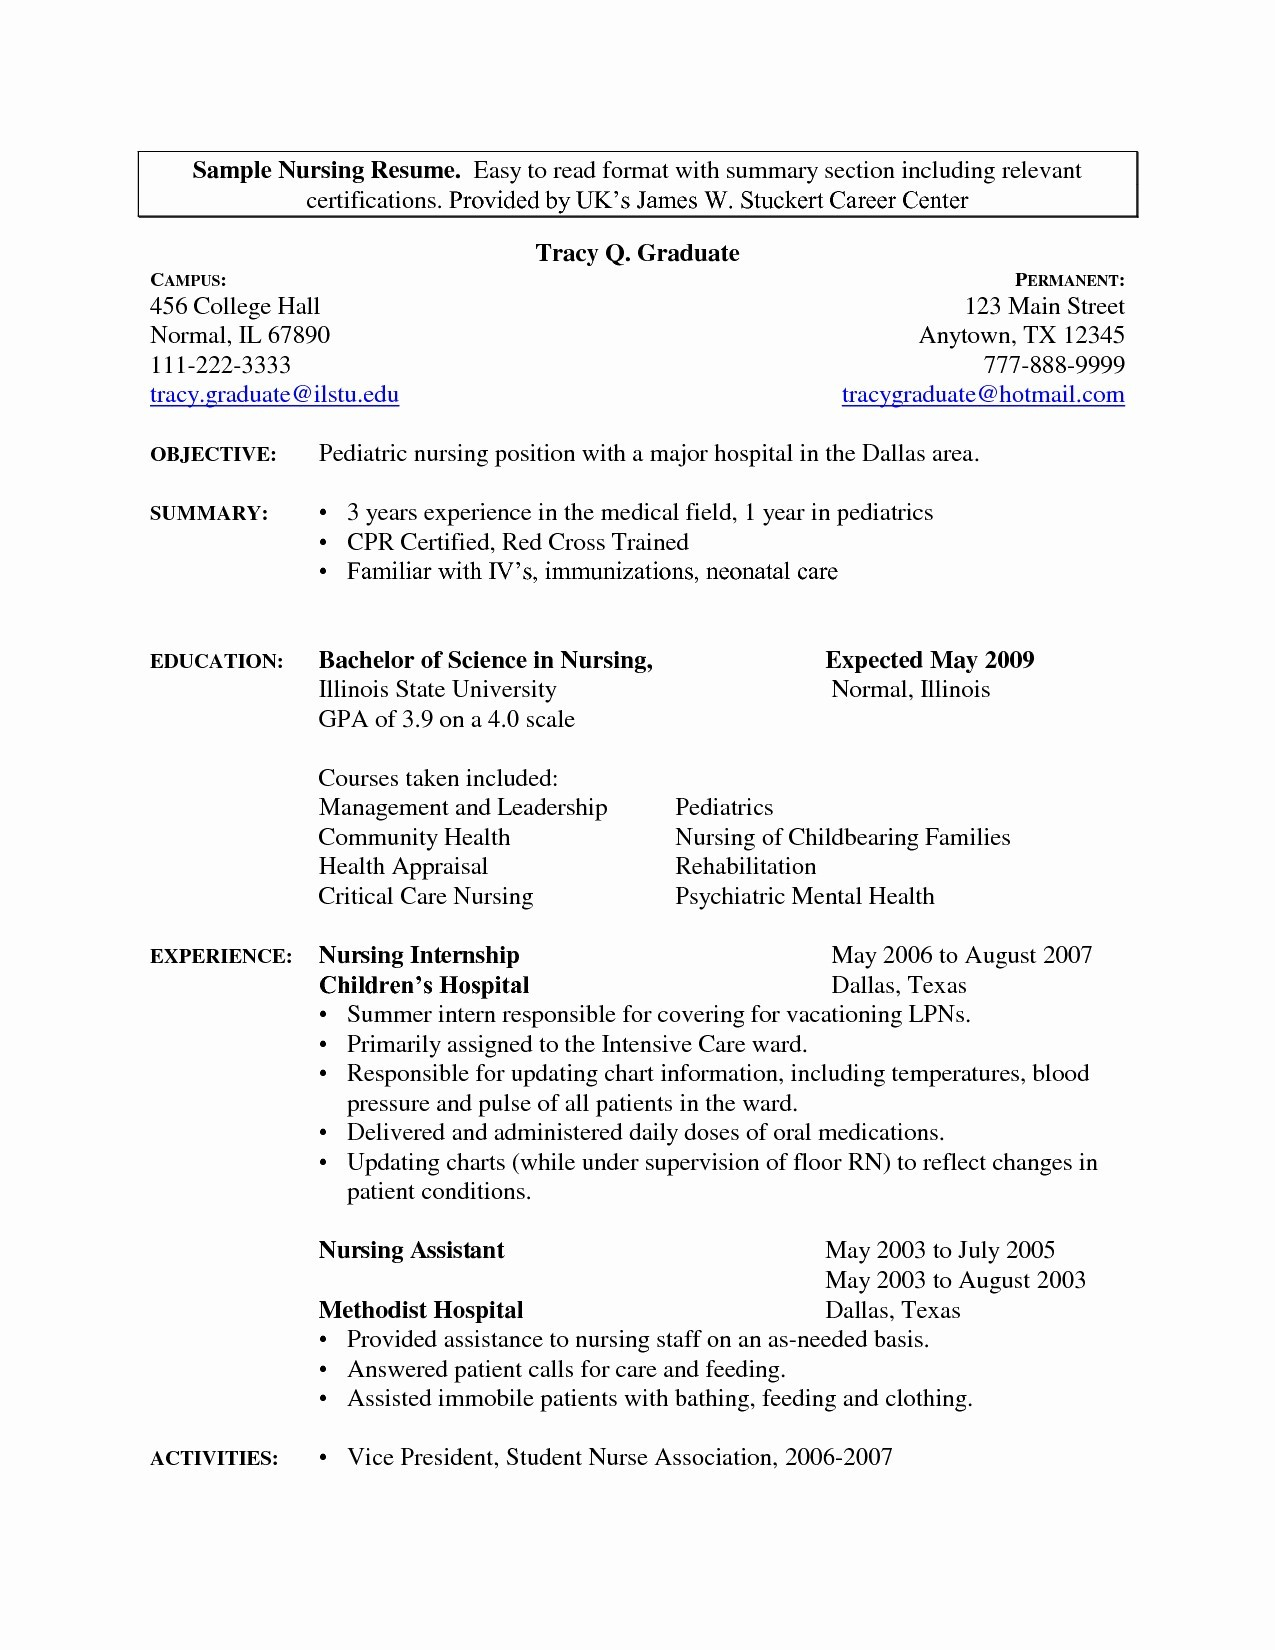 Healthcare Management Resume - Healthcare Resume Examples Awesome Resume Examples 0d Skills Resume